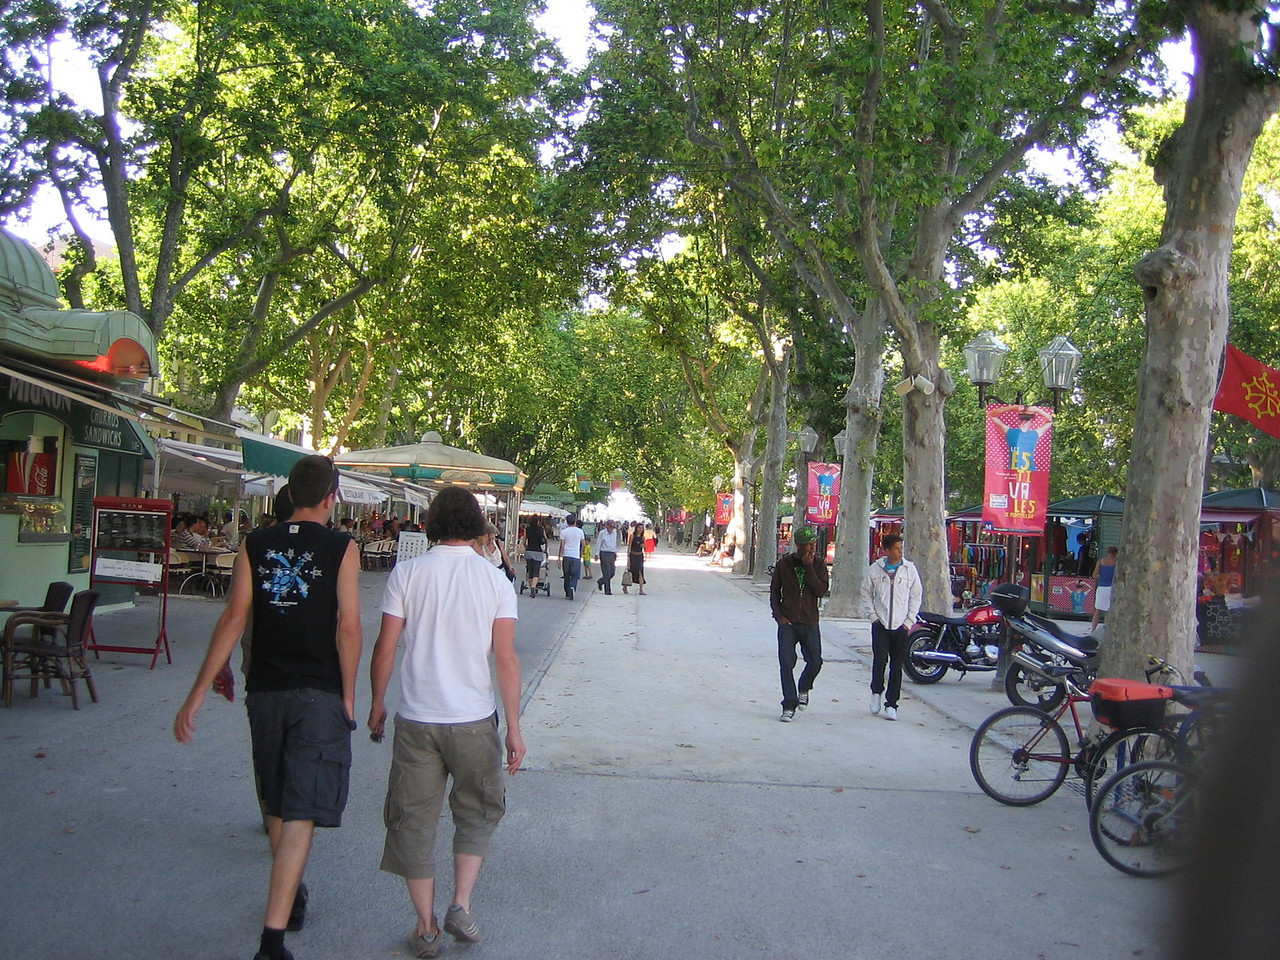 The outdoor market in the Comedy section of Montpellier